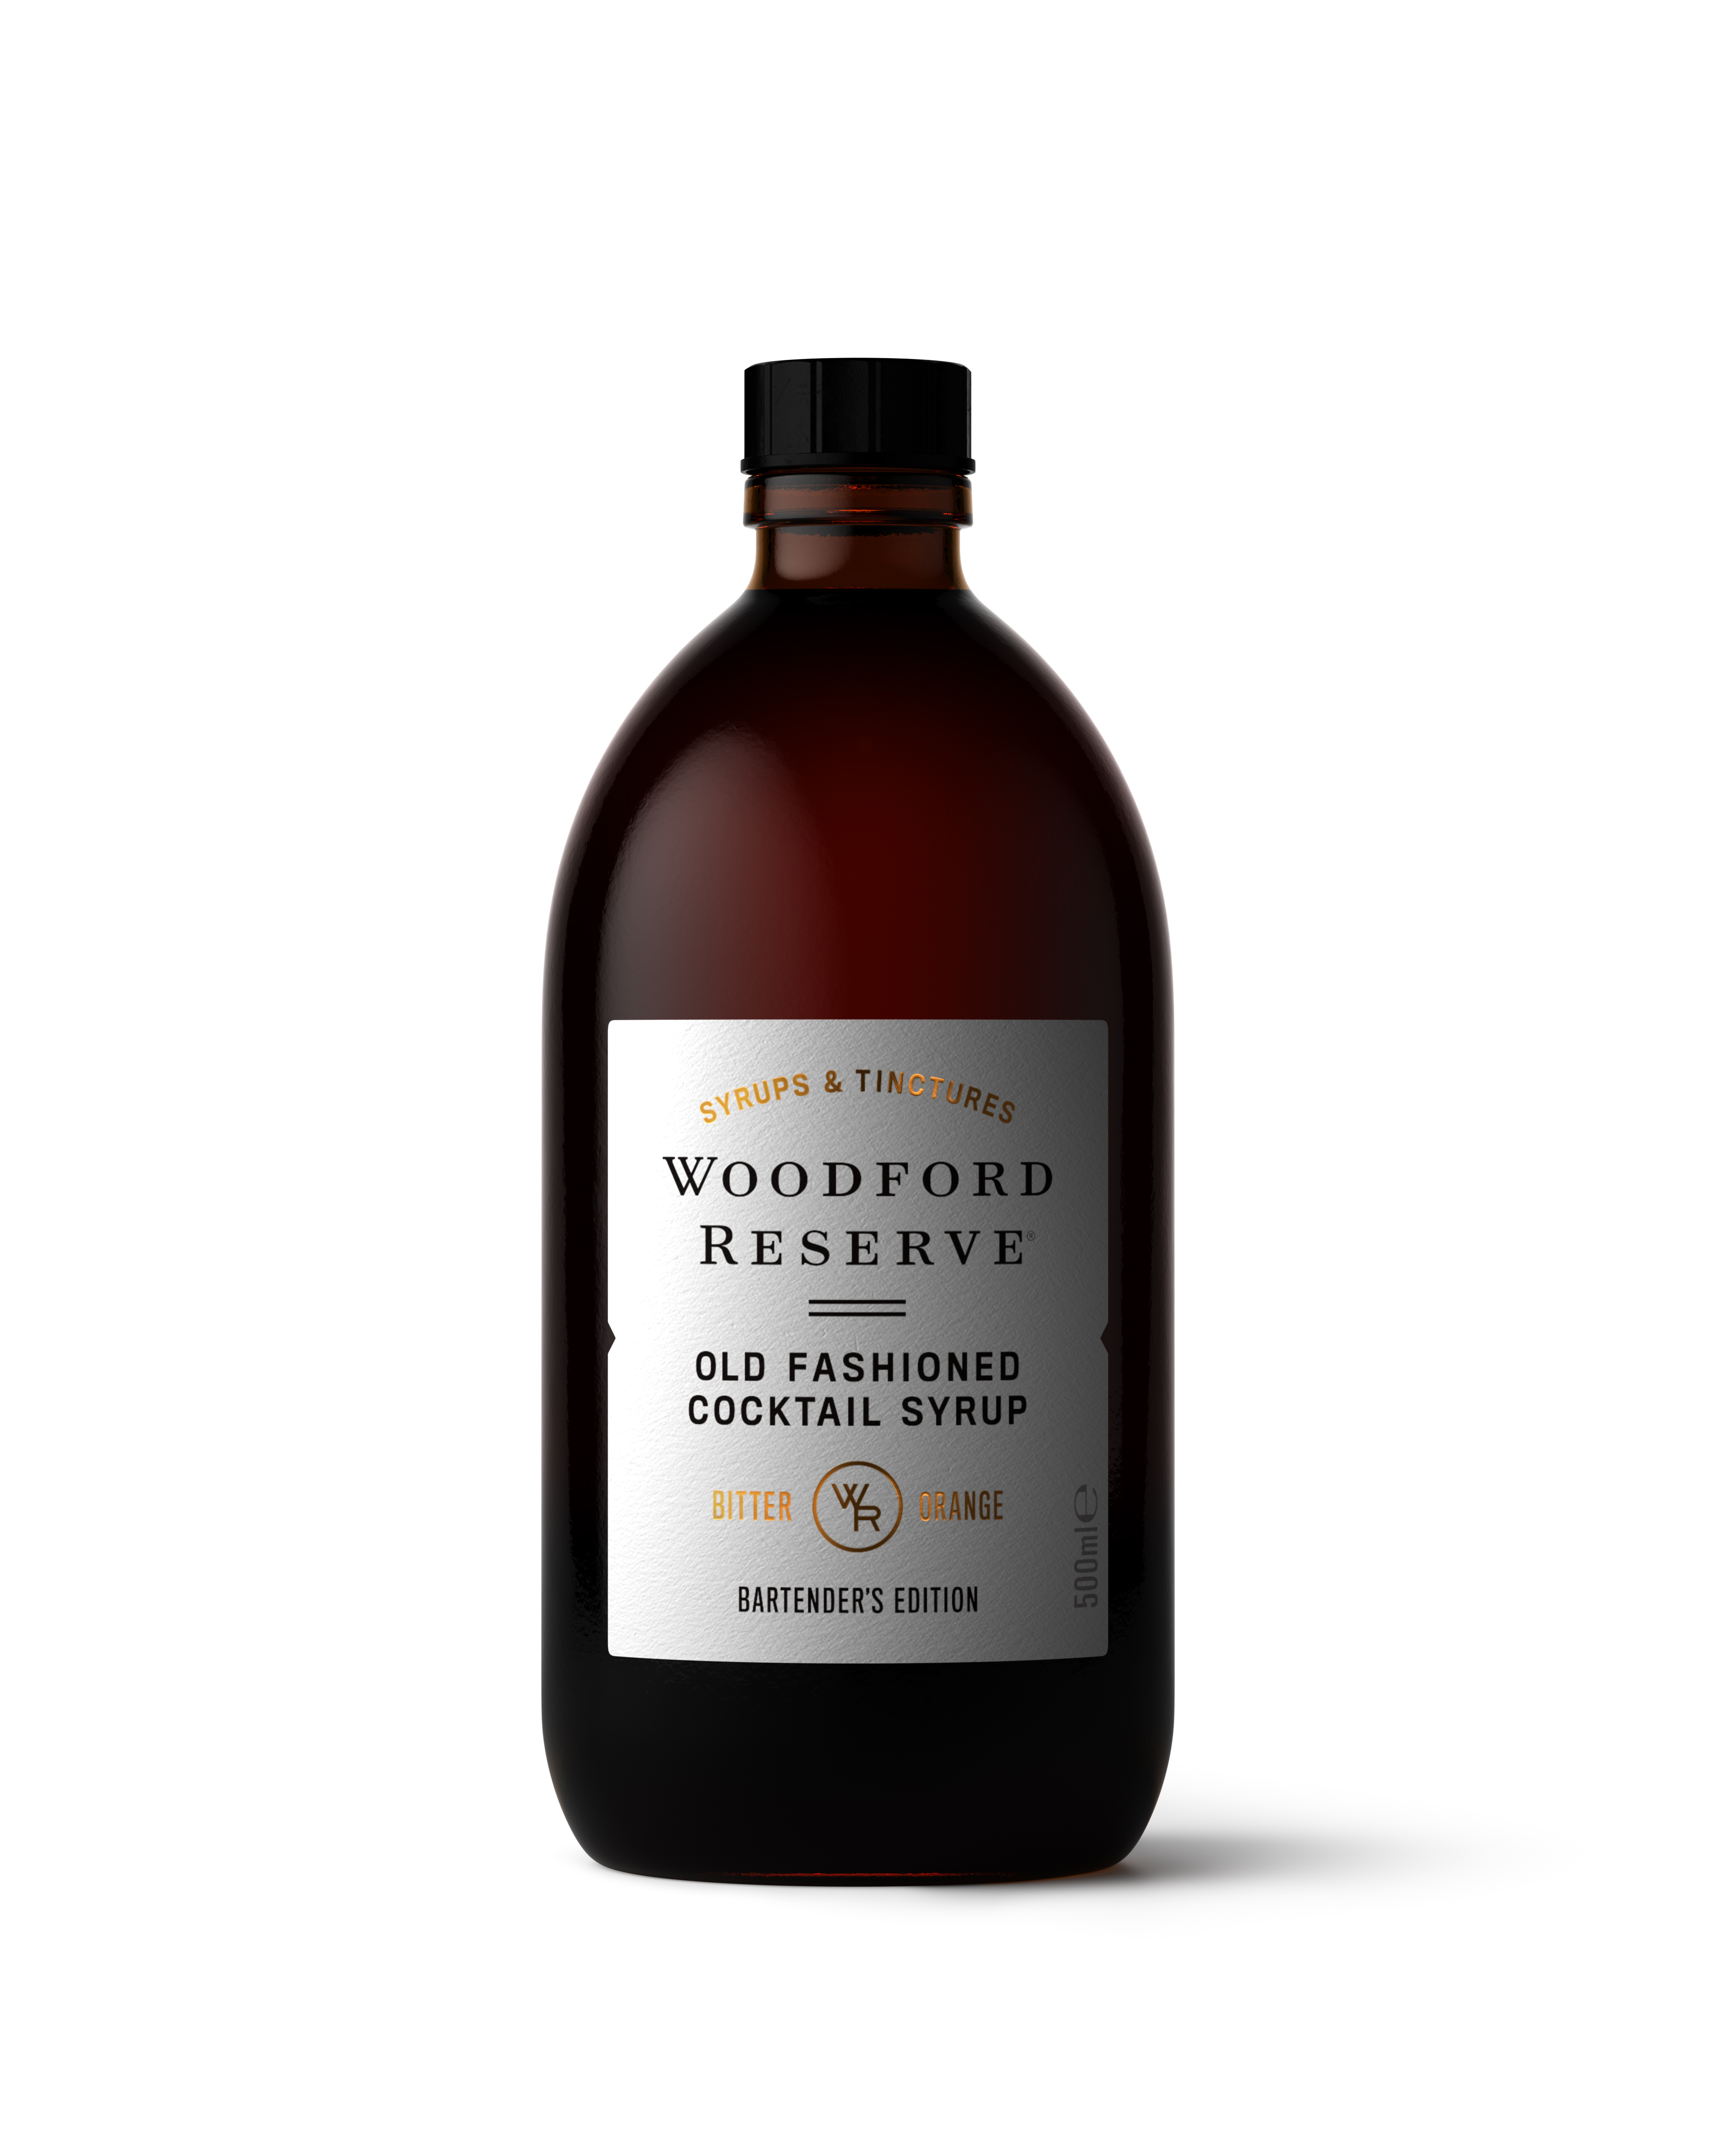 WOODFORD RESERVE® Creates a Bespoke Old Fashioned Cocktail Syrup